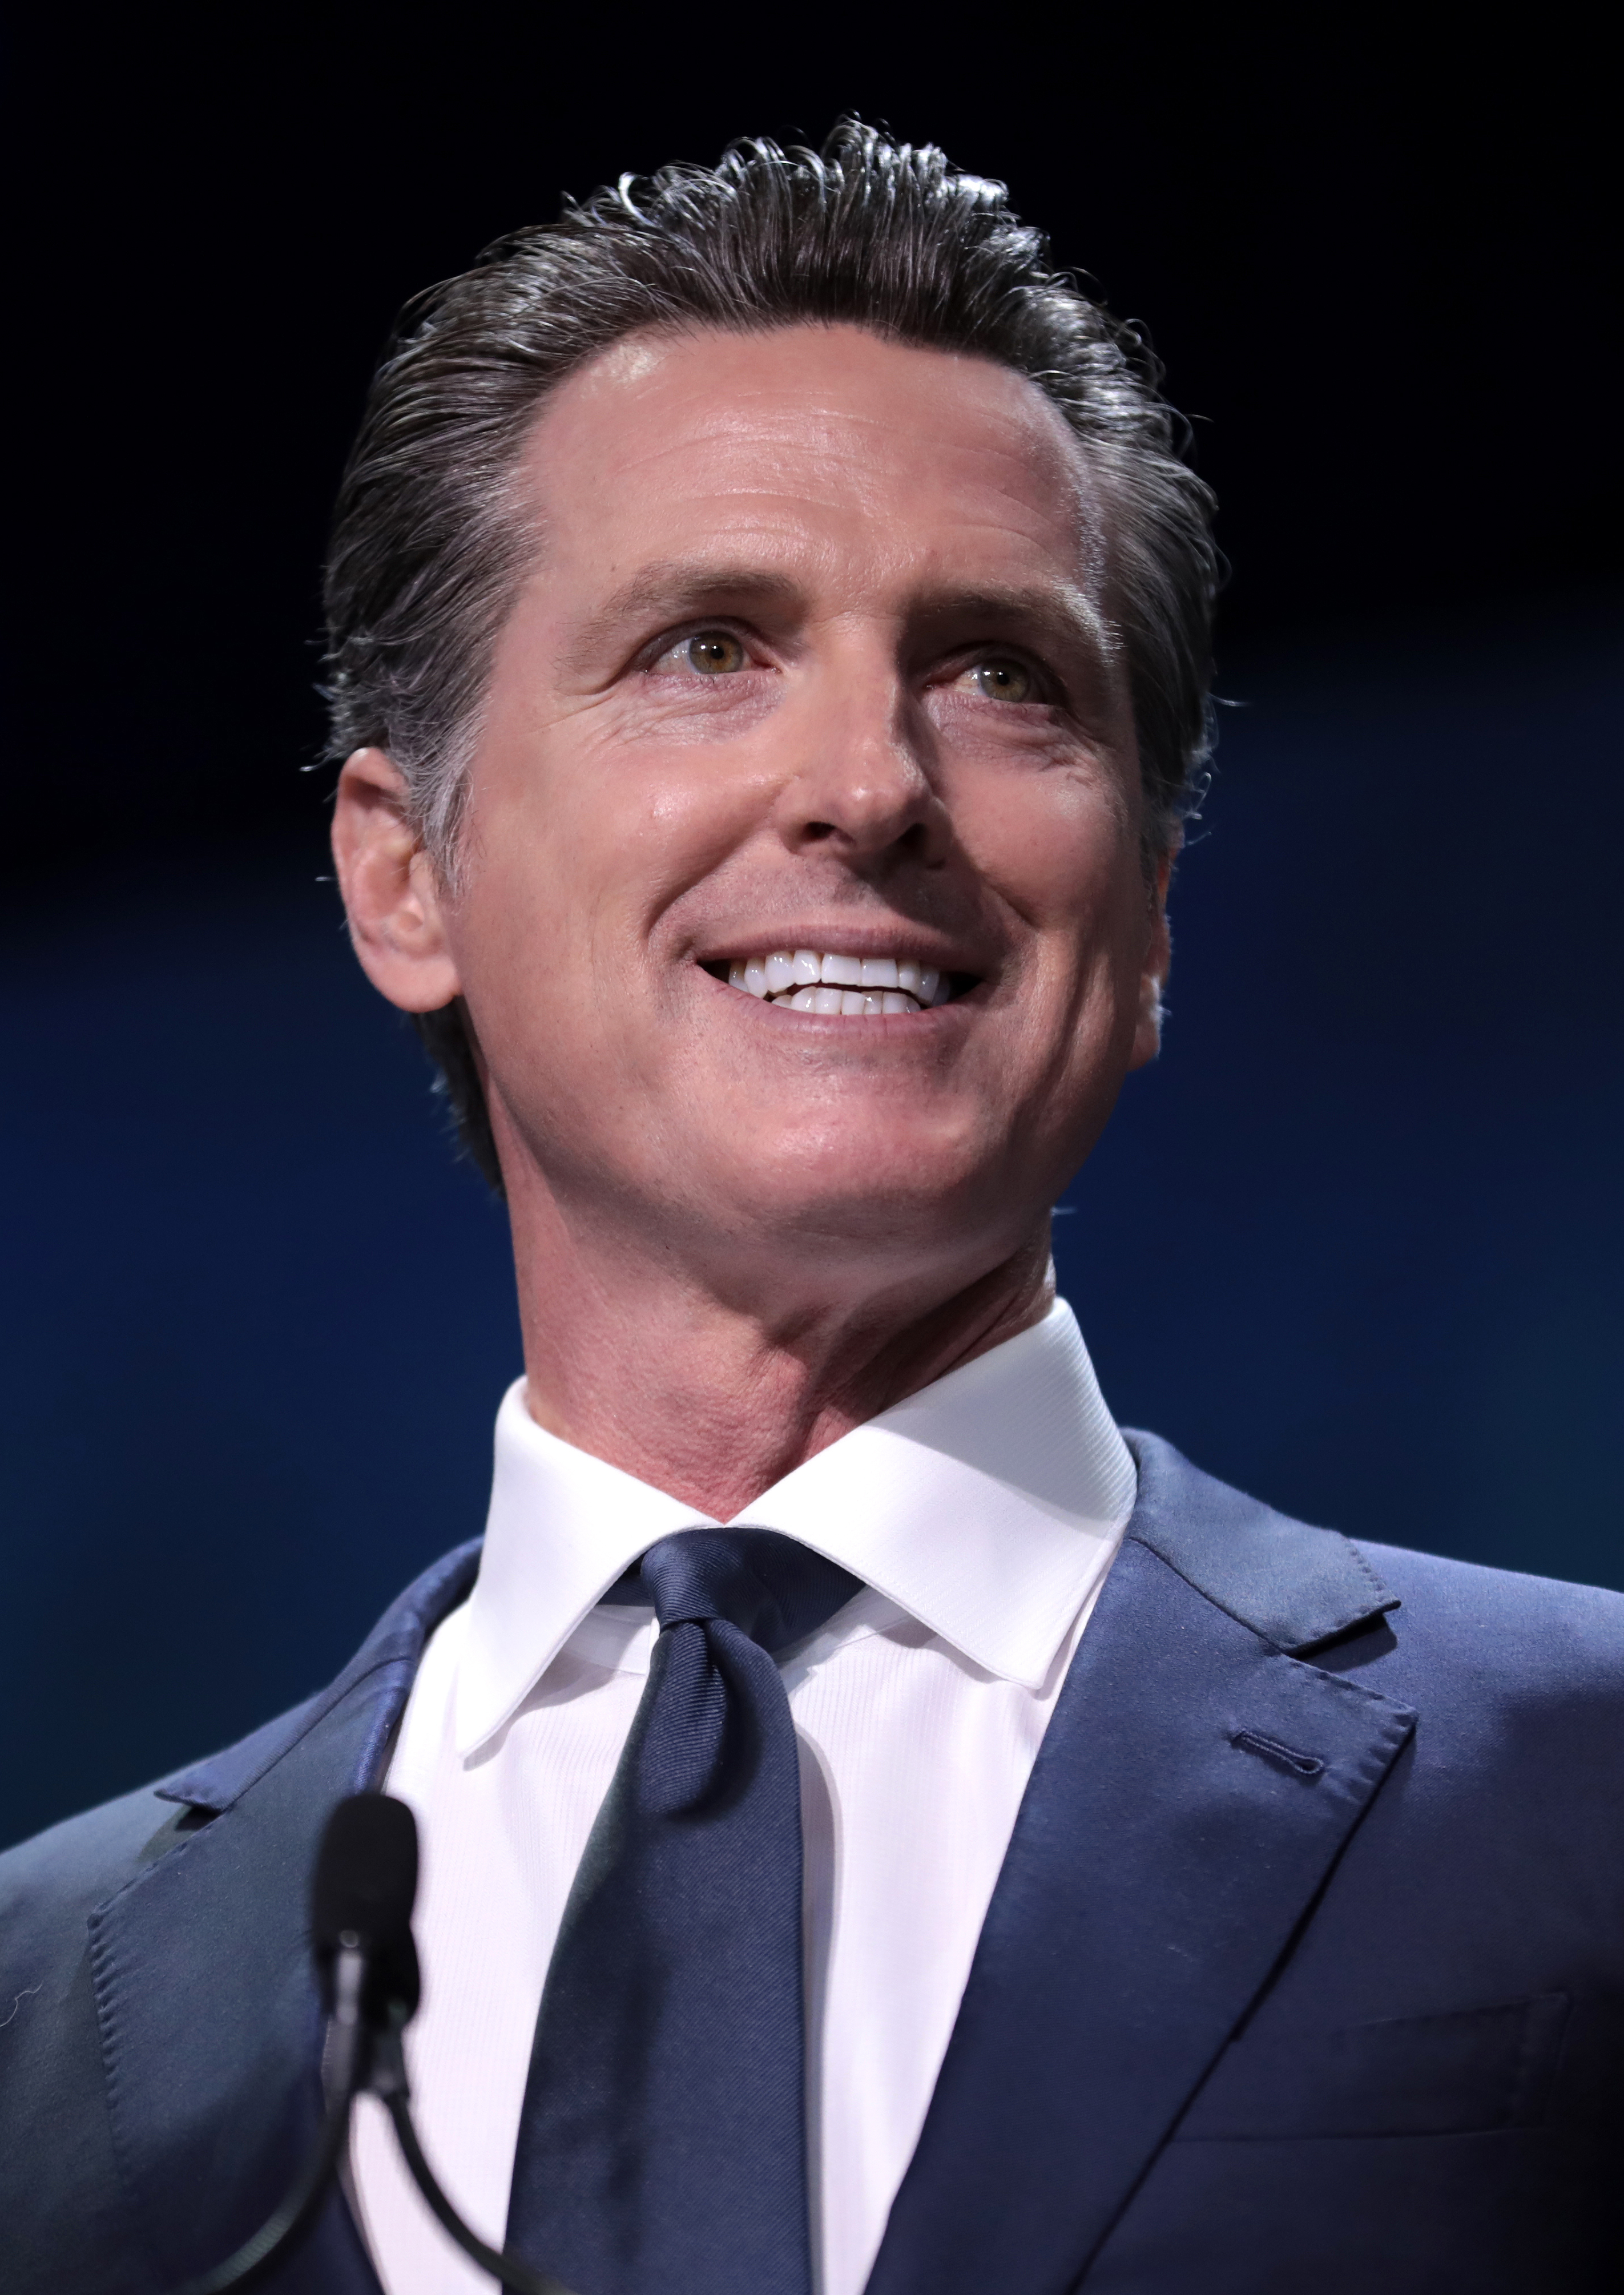 The 53-year old son of father  William Alfred Newsom III and mother(?) Gavin Newsom in 2021 photo. Gavin Newsom earned a  million dollar salary - leaving the net worth at 10 million in 2021